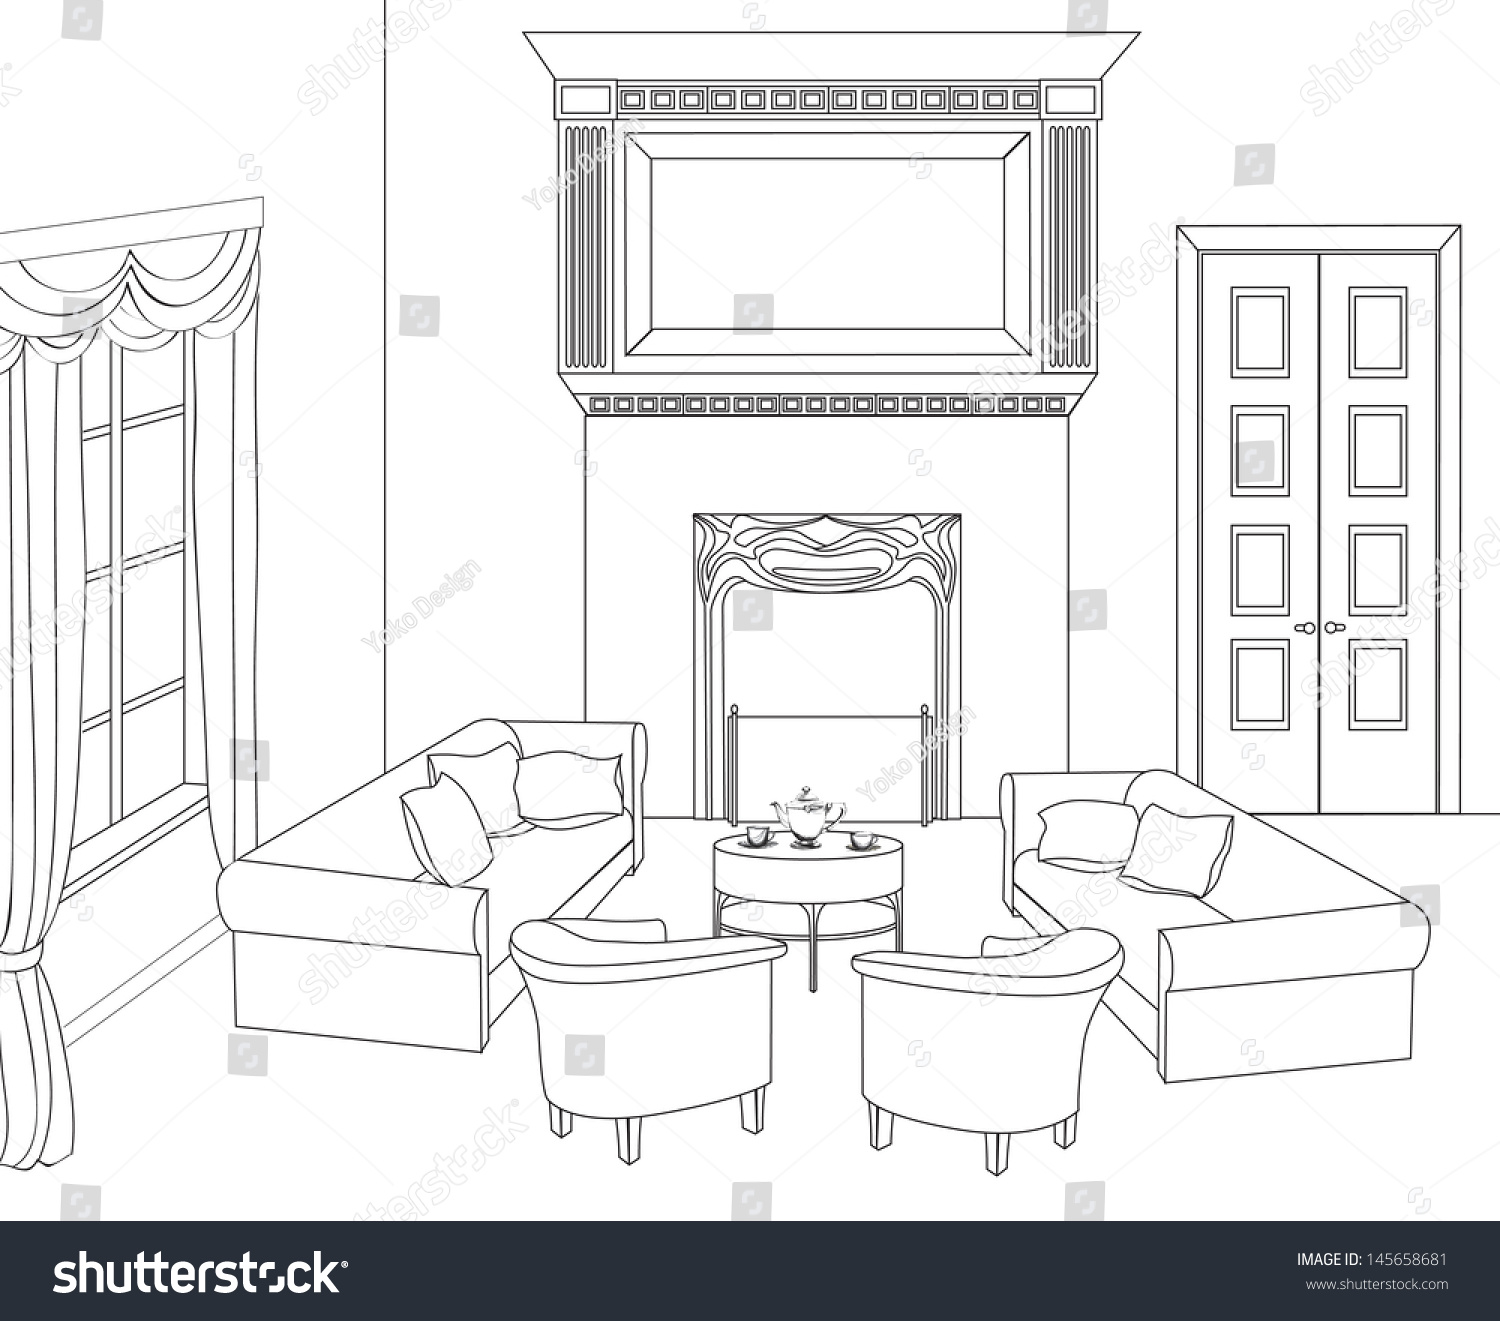 Drawingroom editable vector illustration outline sketch for Online drawing room